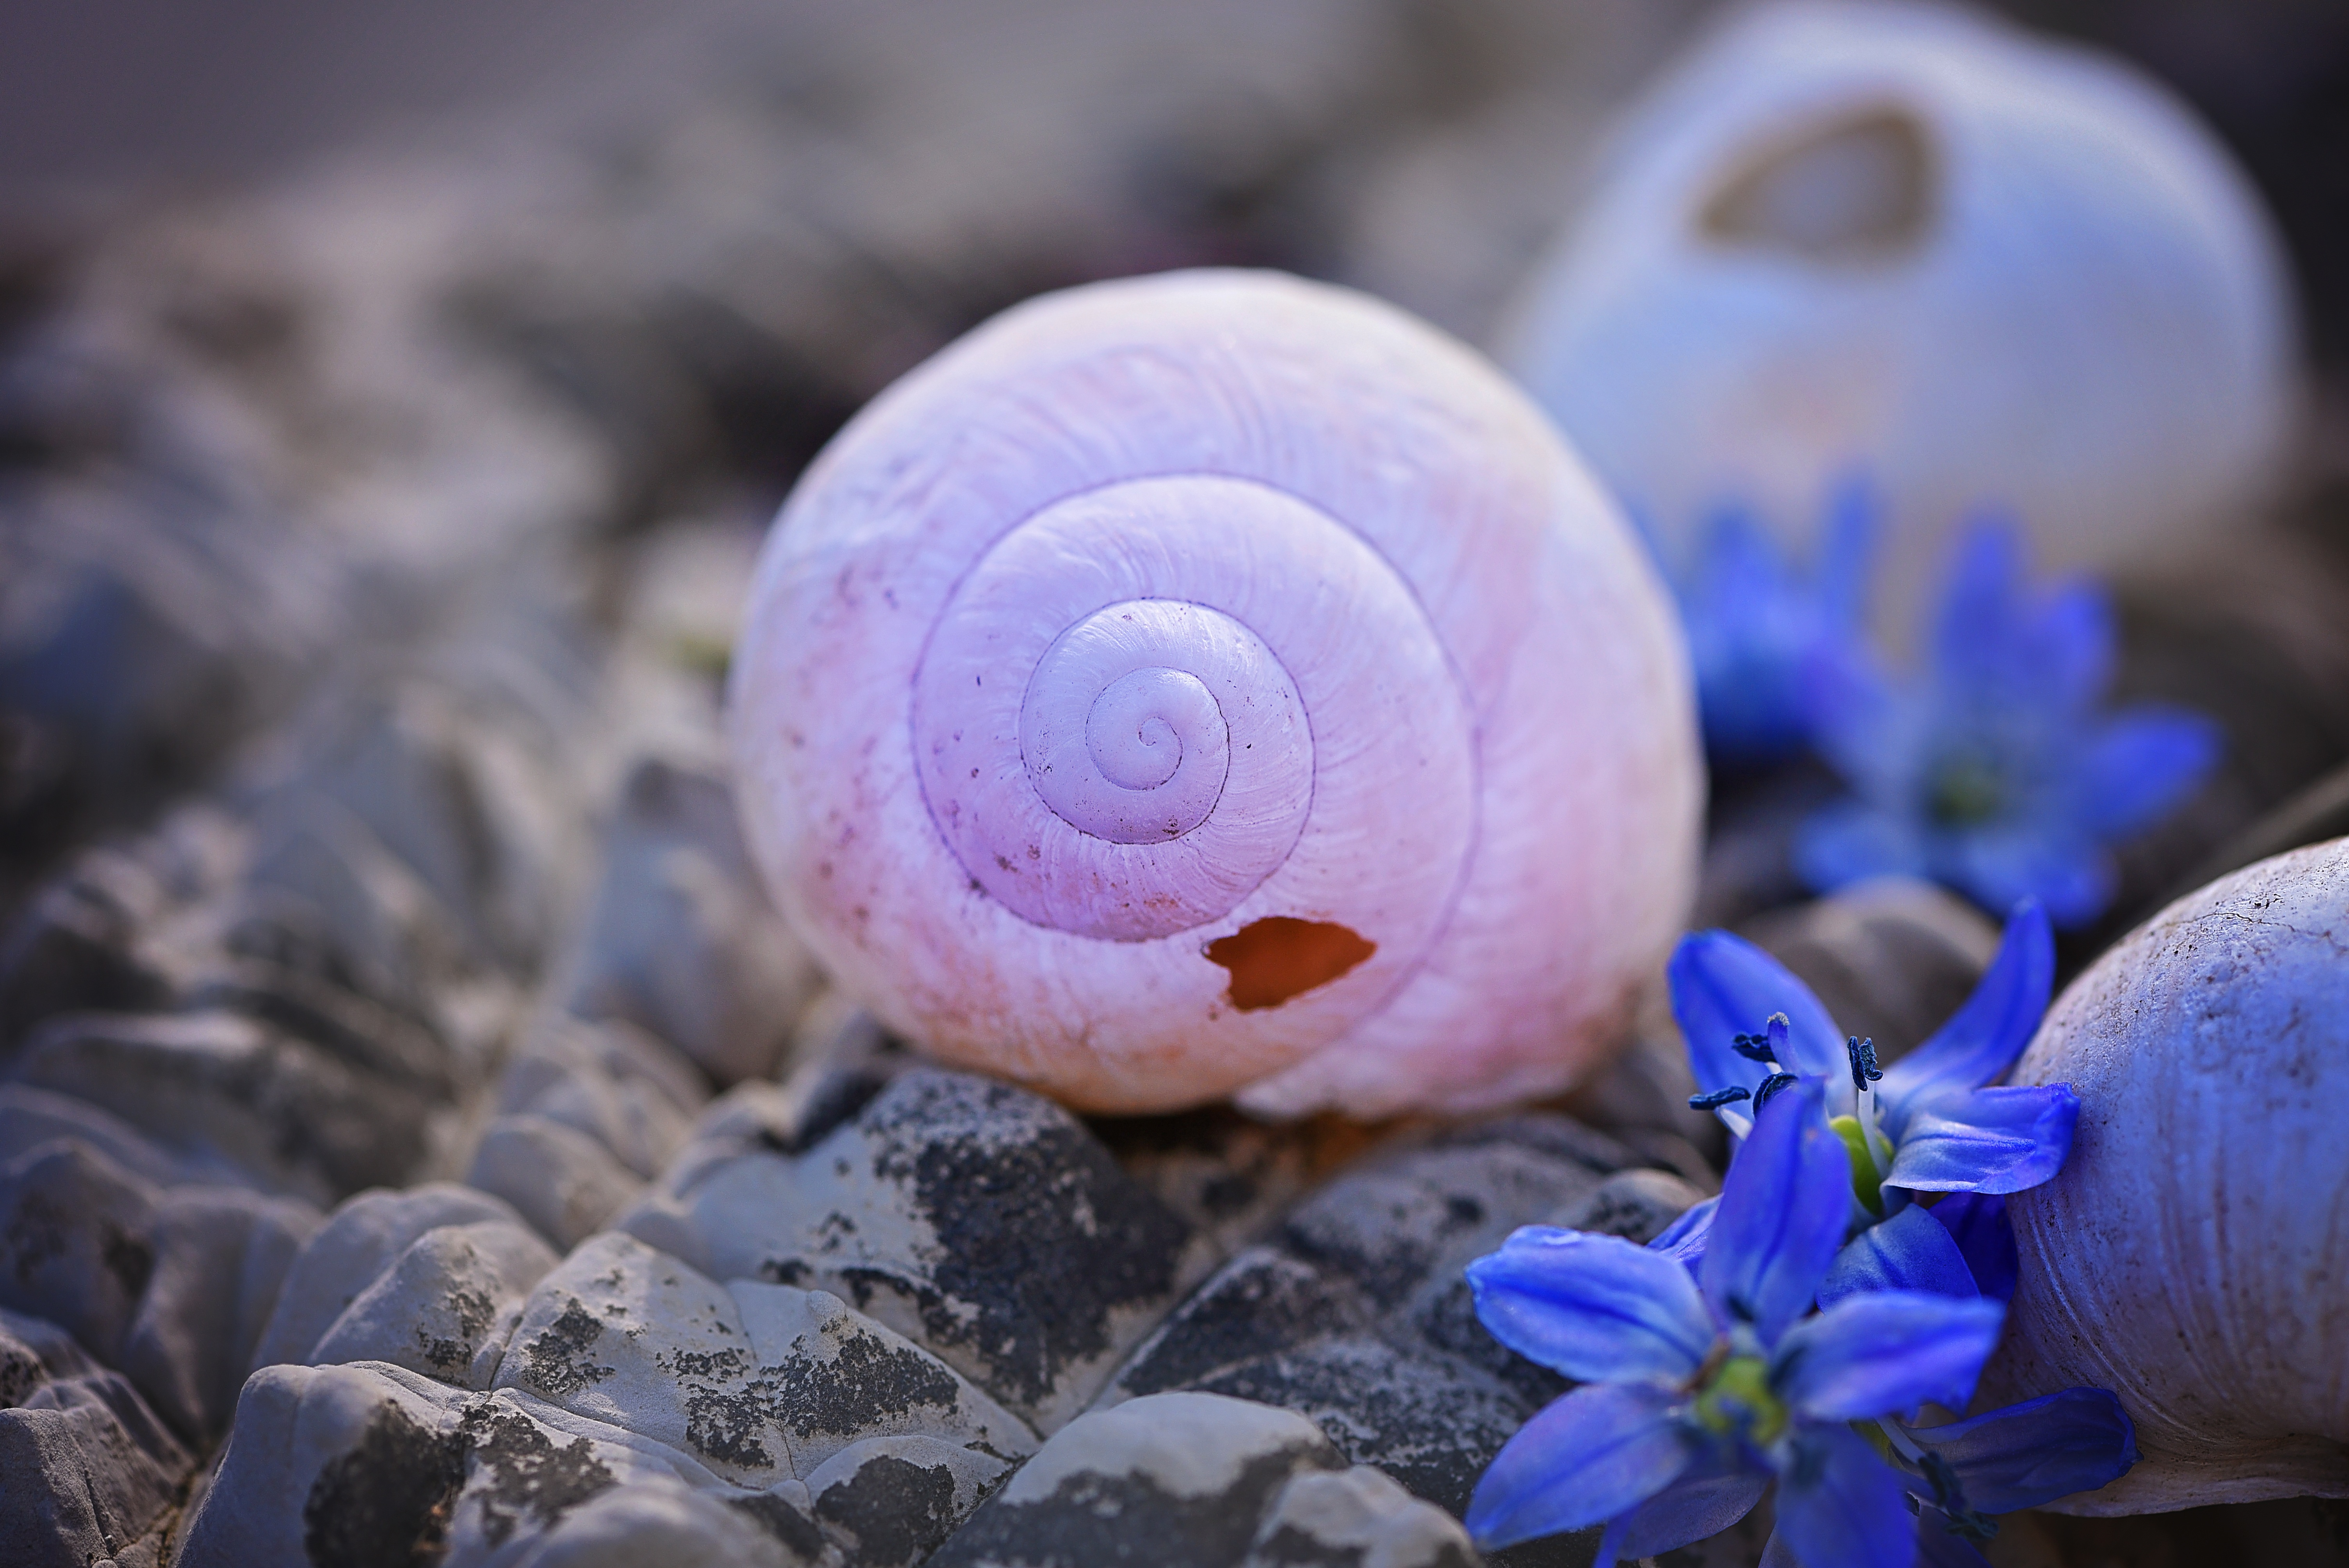 132020 download wallpaper Macro, Stones, Shells, Flower screensavers and pictures for free